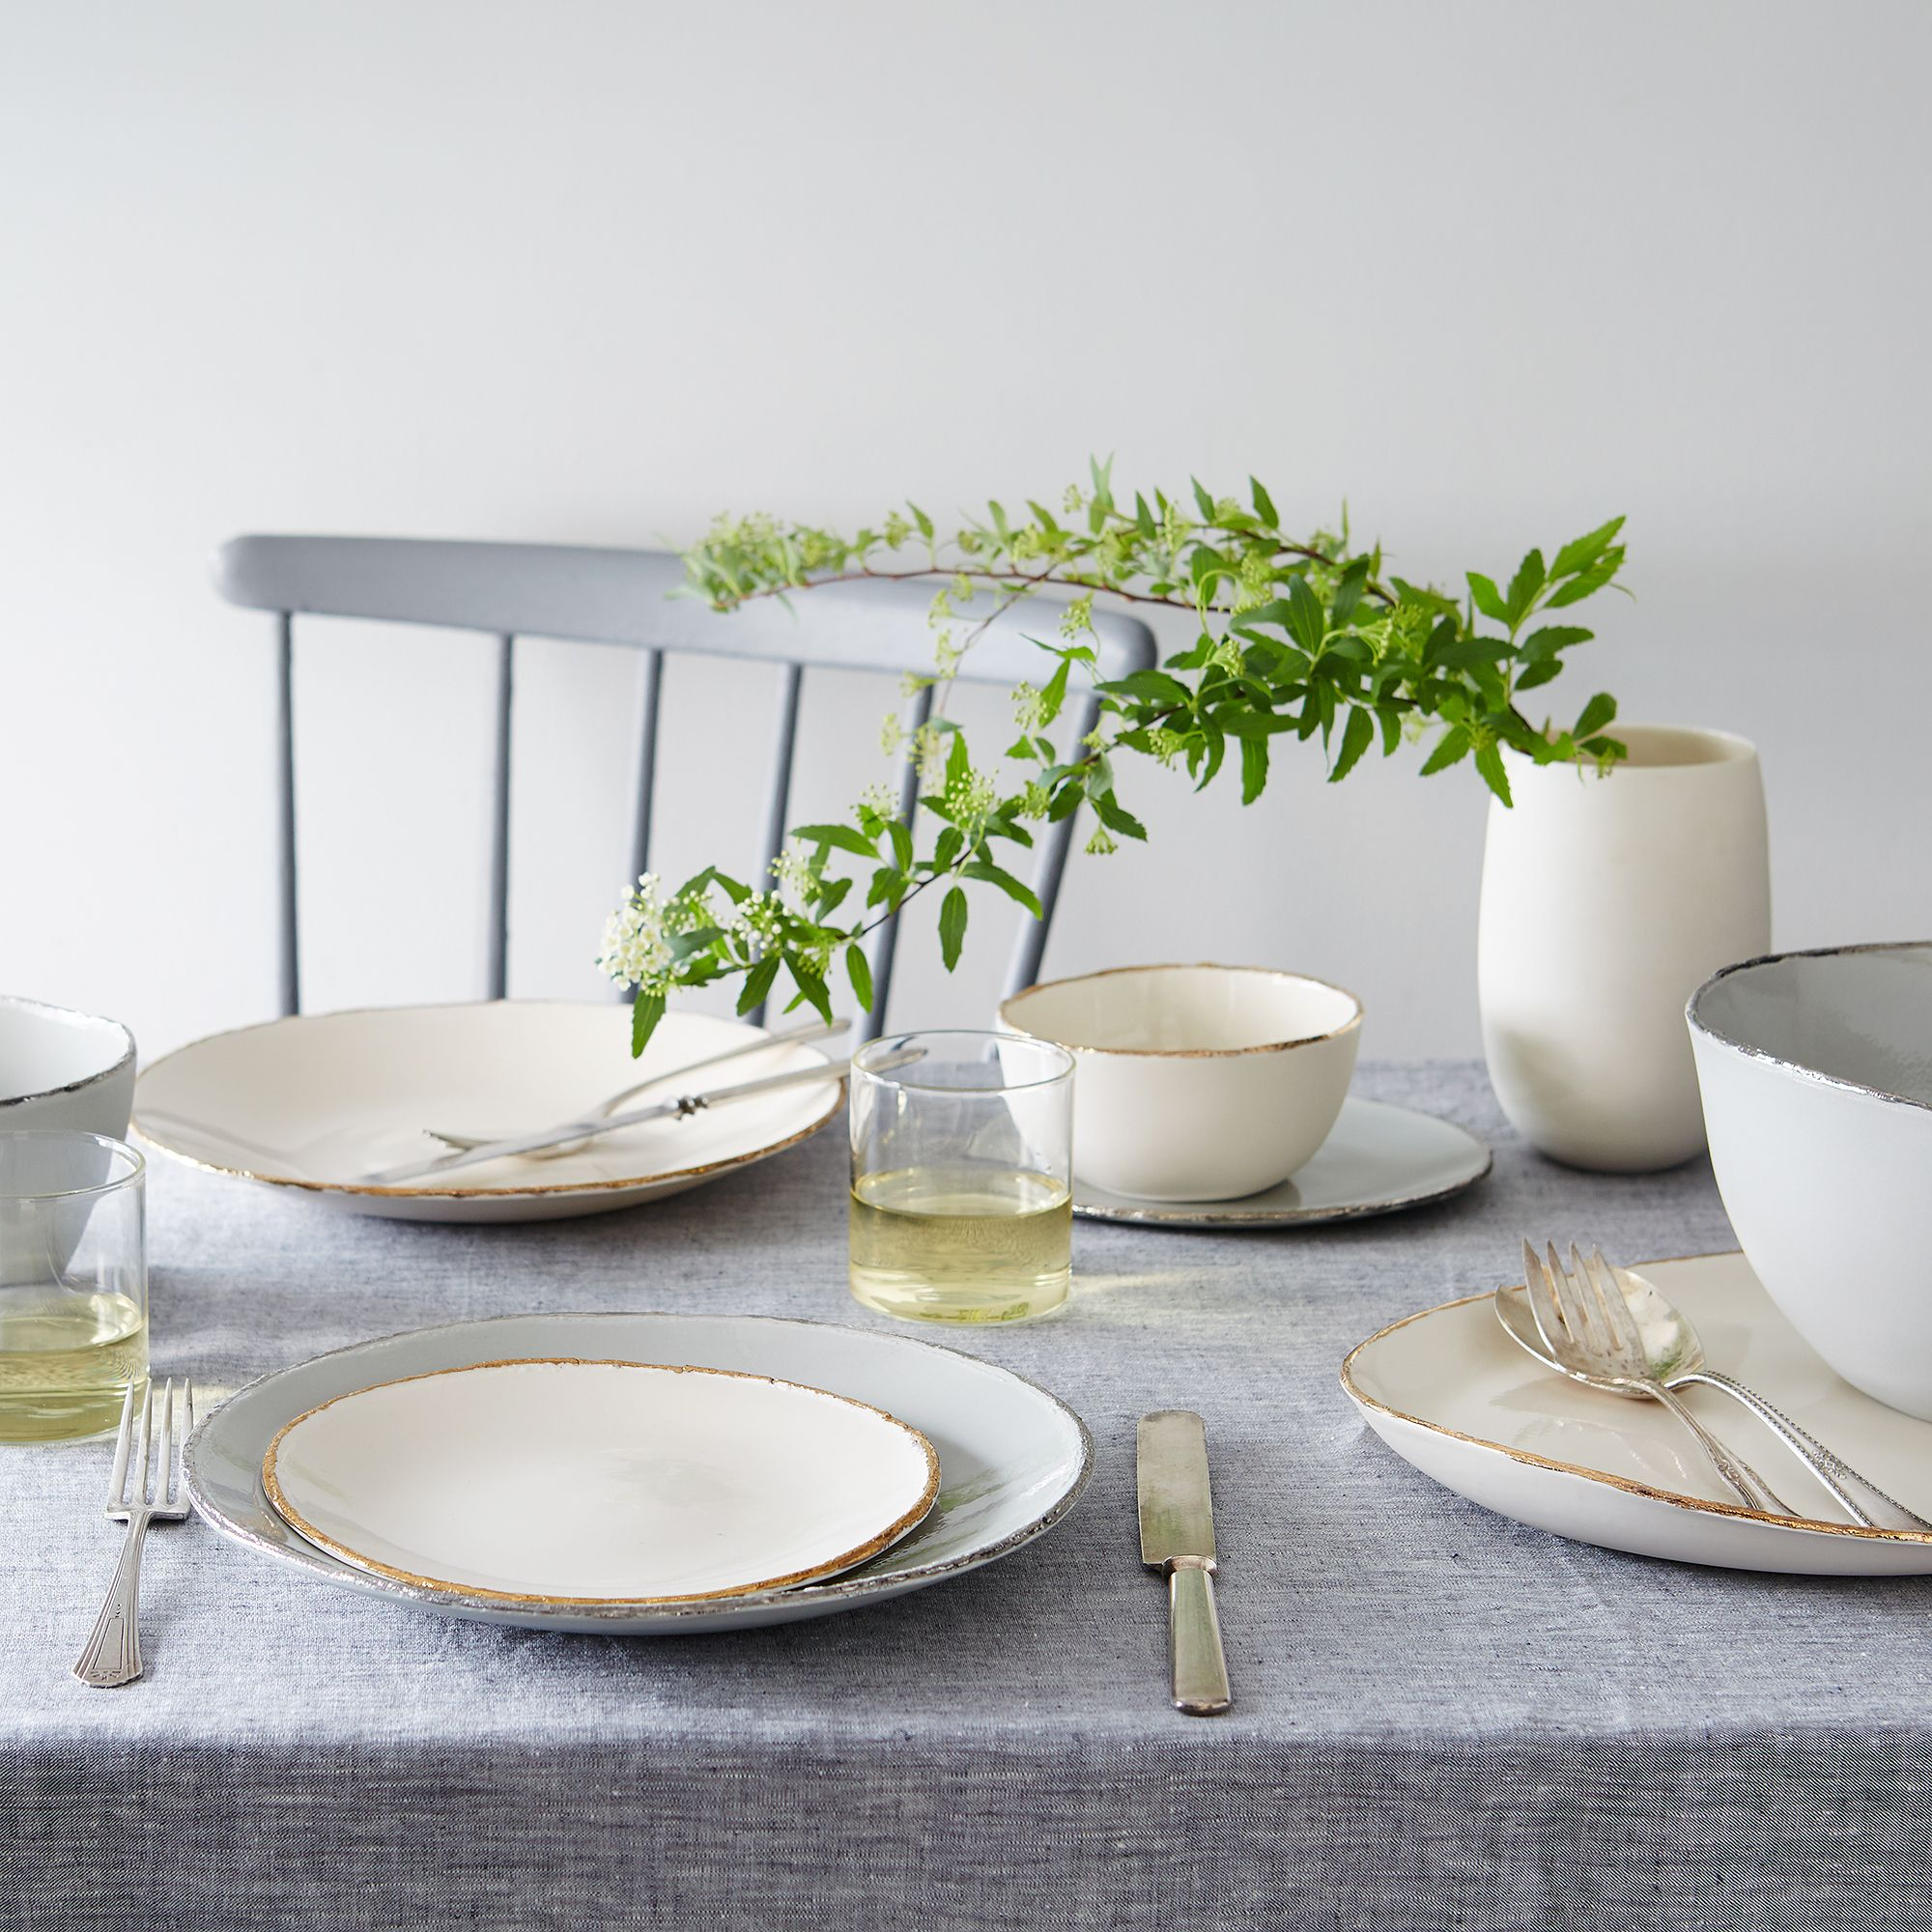 How To Set A Table Properly For Any Dinner Occasion From